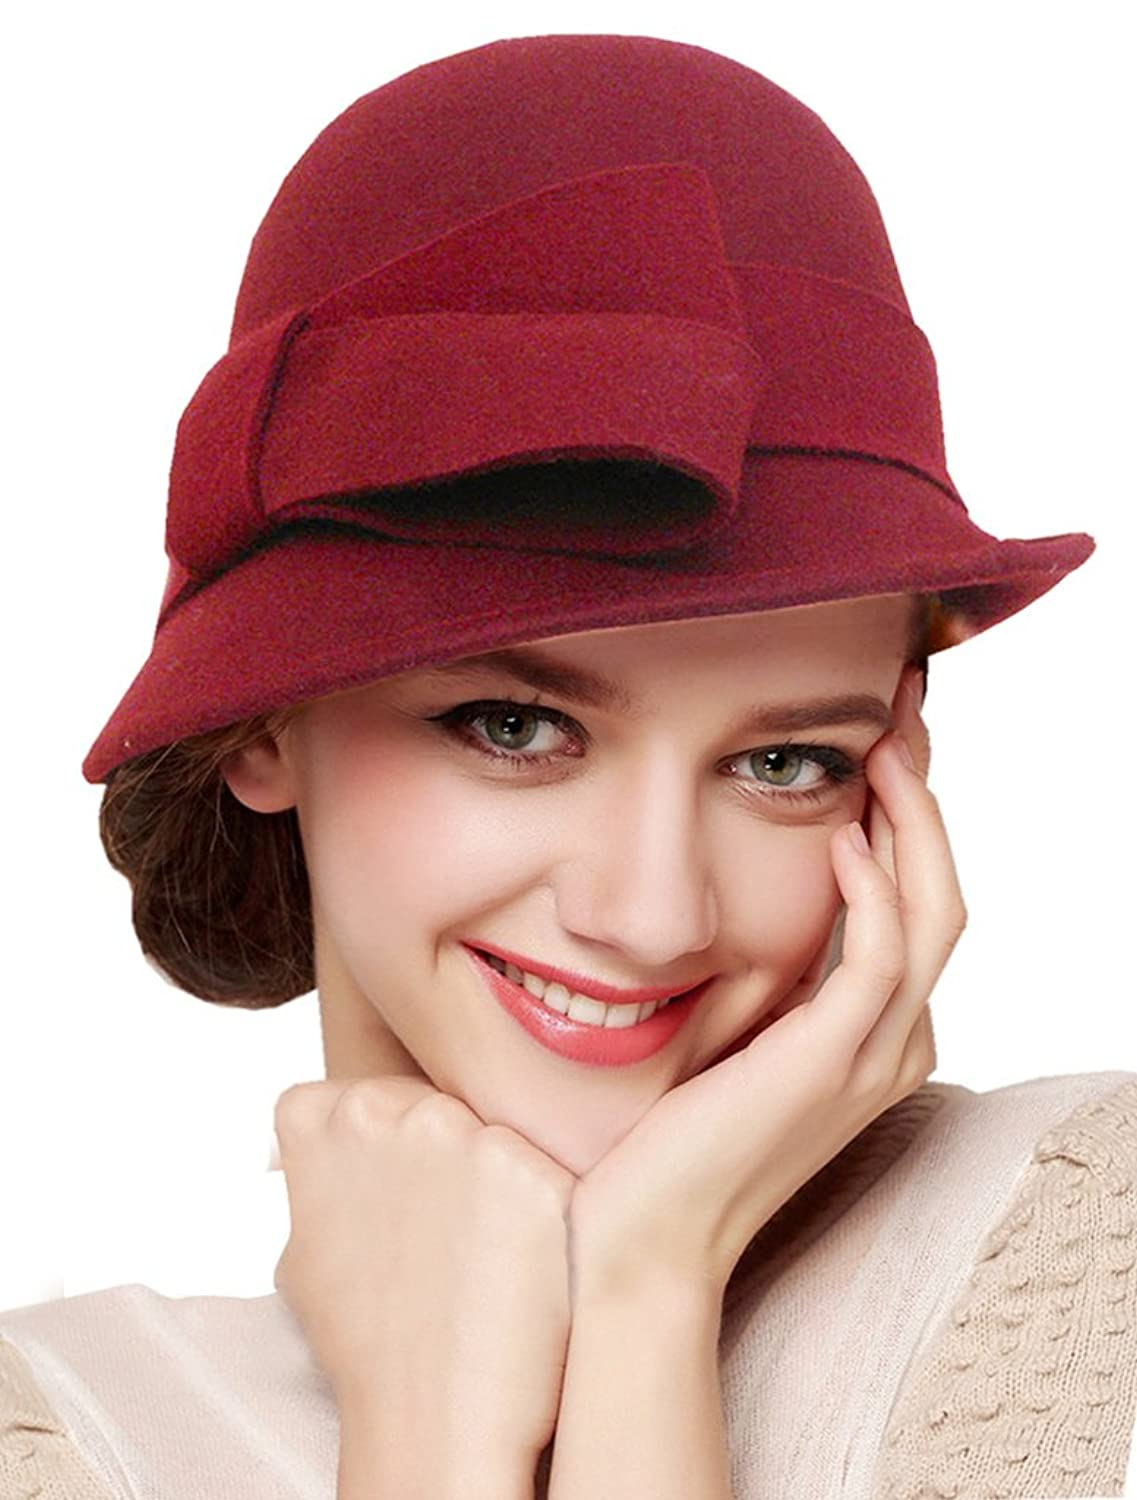 1920s Style Hats Women Solid Color Winter Hat 100% Wool Cloche Bucket with Bow Accent $23.96 AT vintagedancer.com